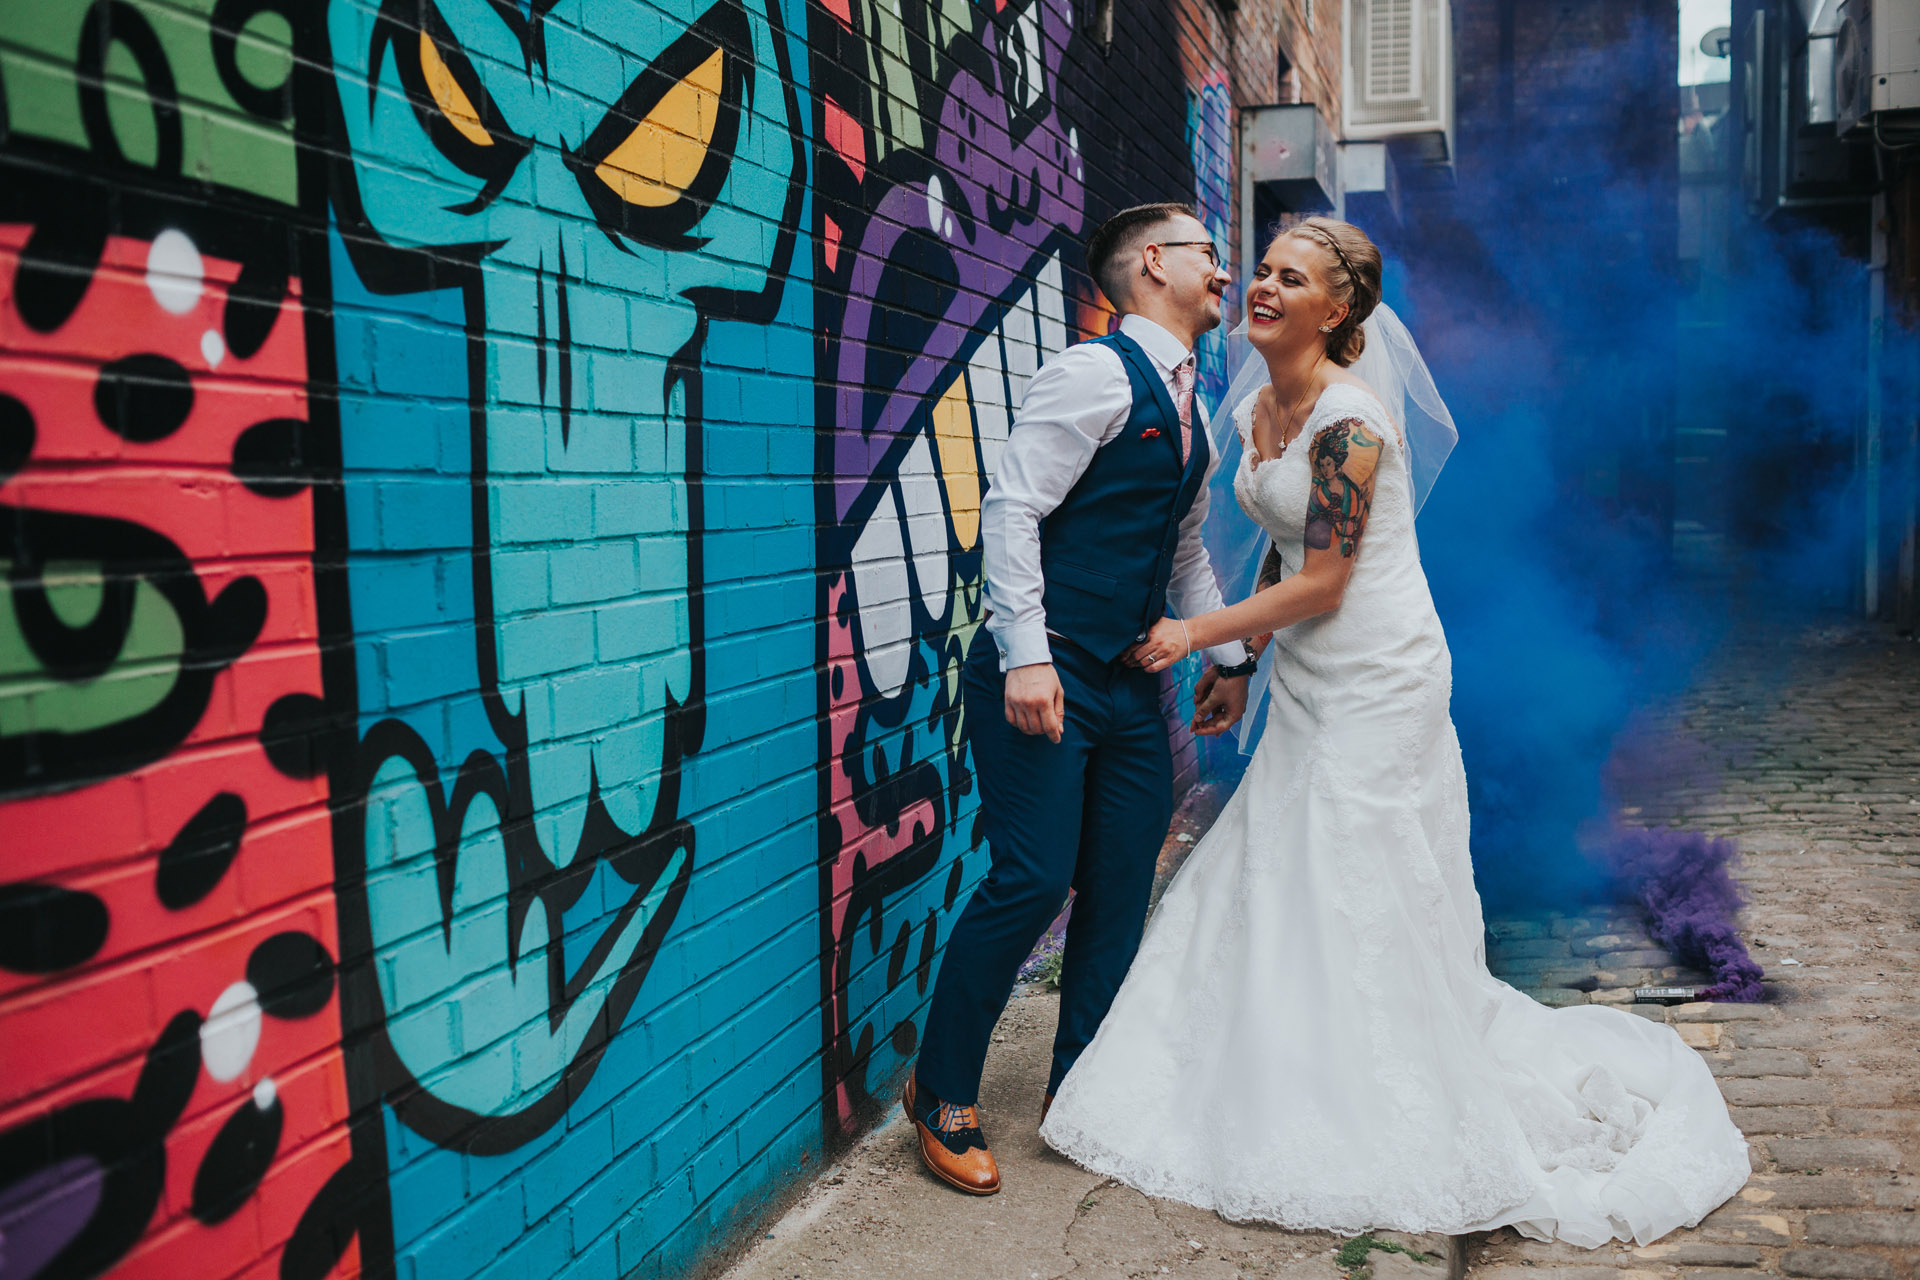 Bride and Groom with smoke bombs in Manchester.